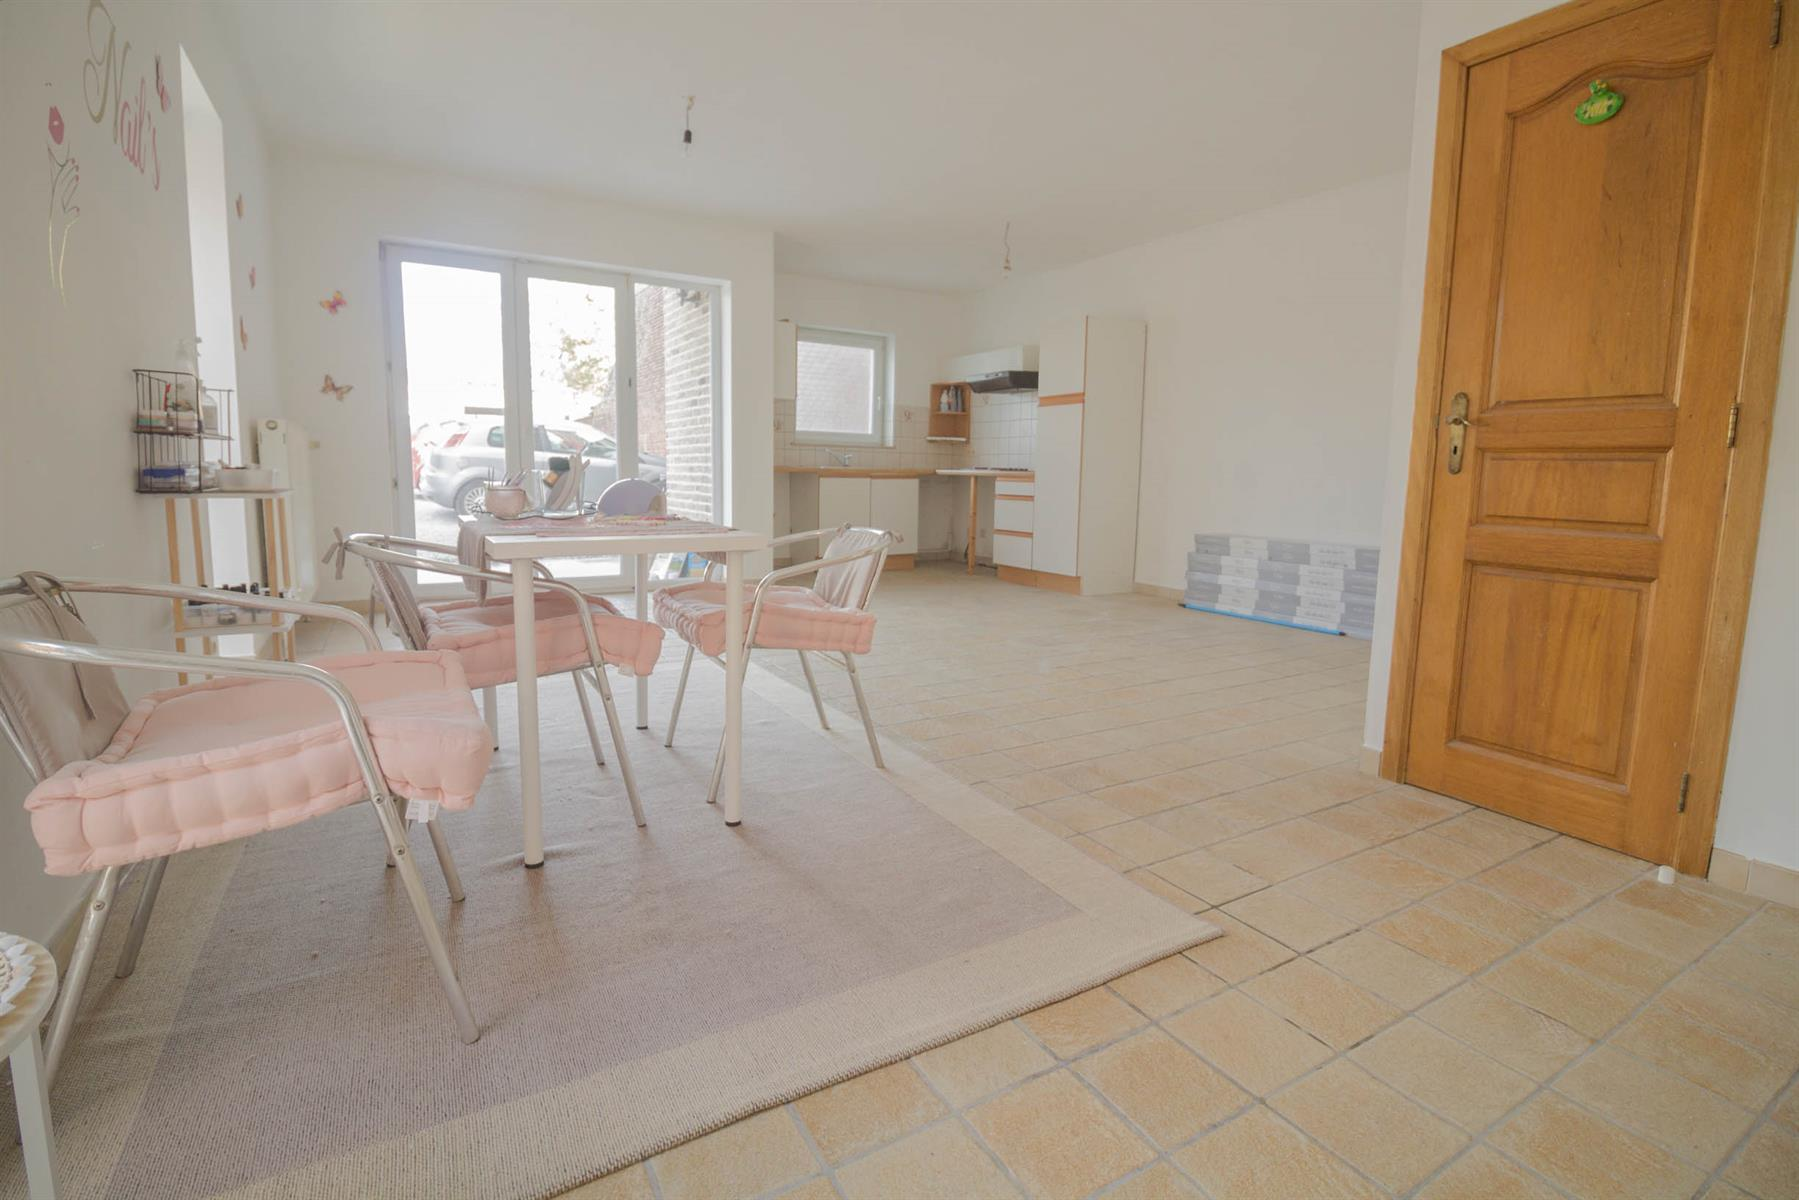 Studio - Courcelles - #4226898-3